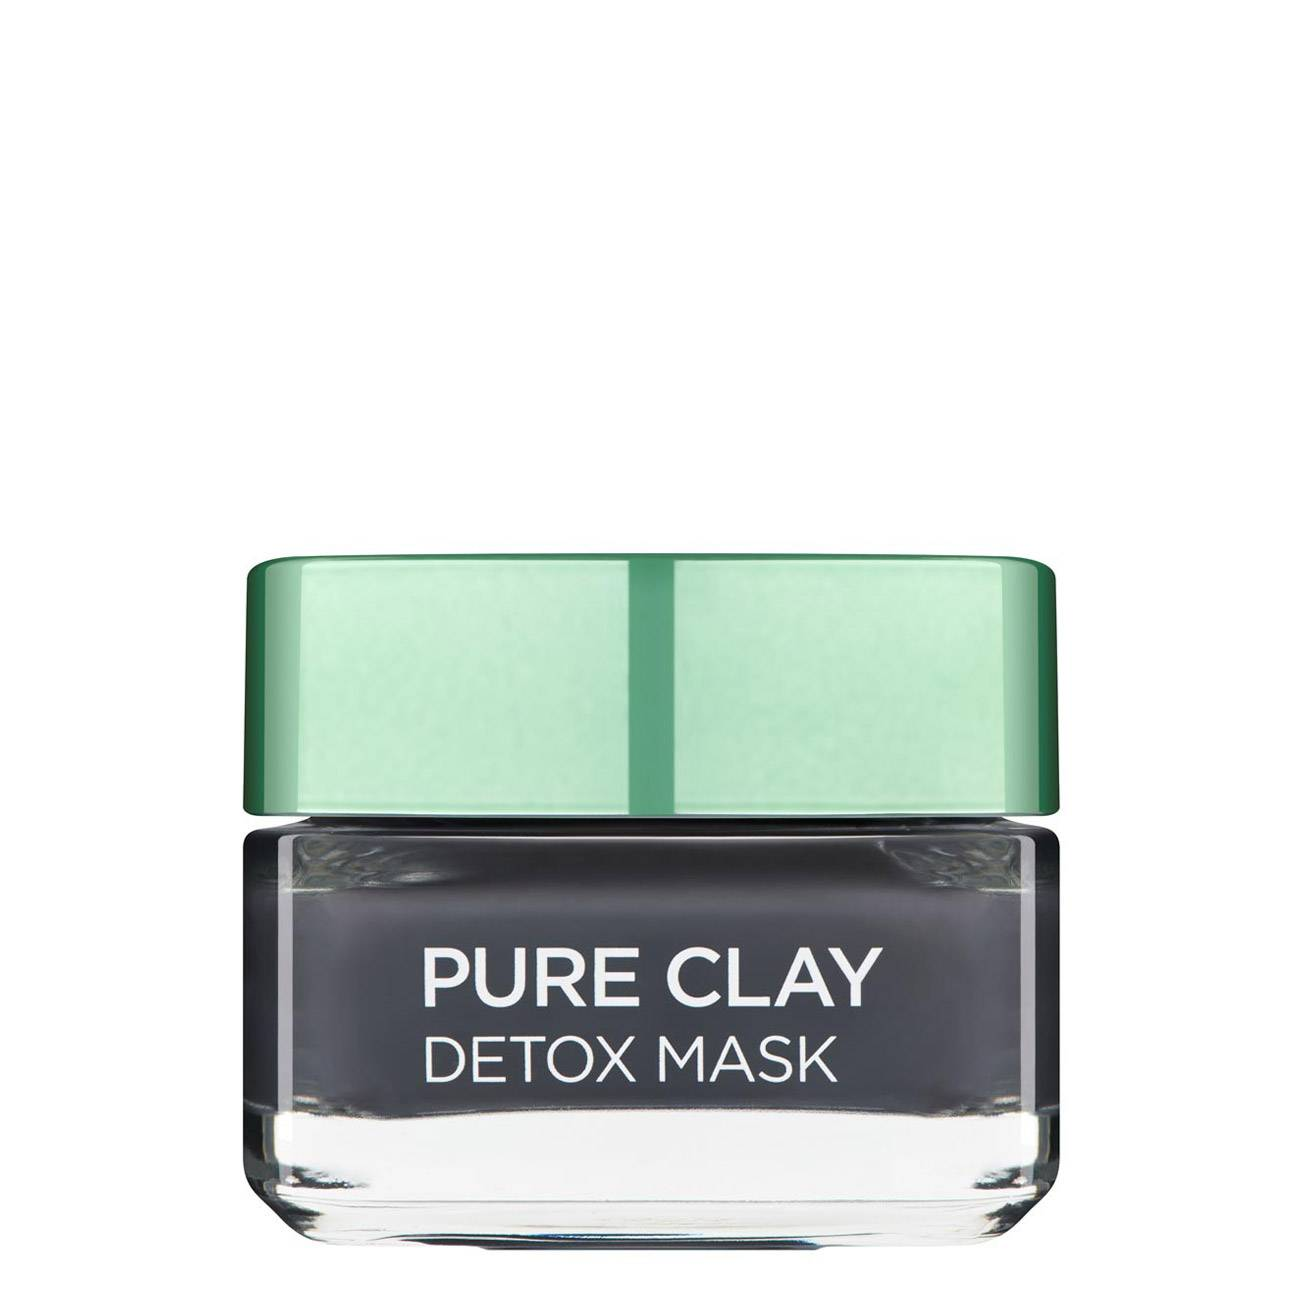 Pure Clay Detox Mask 50 Ml L'Oreal imagine 2021 bestvalue.eu